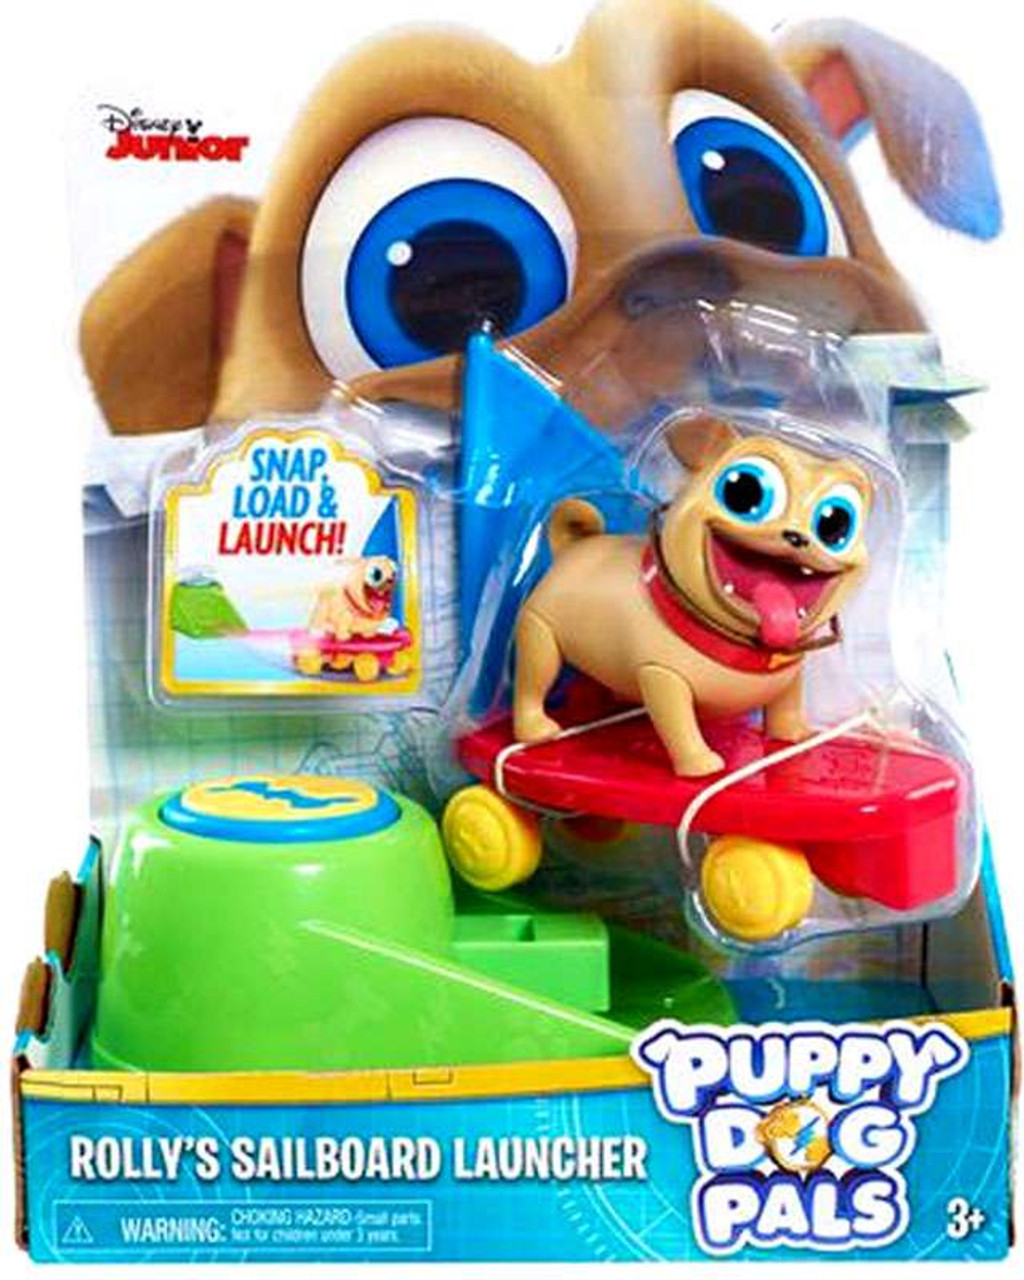 Puppy Dog Pals Rolly Sailboard Launcher